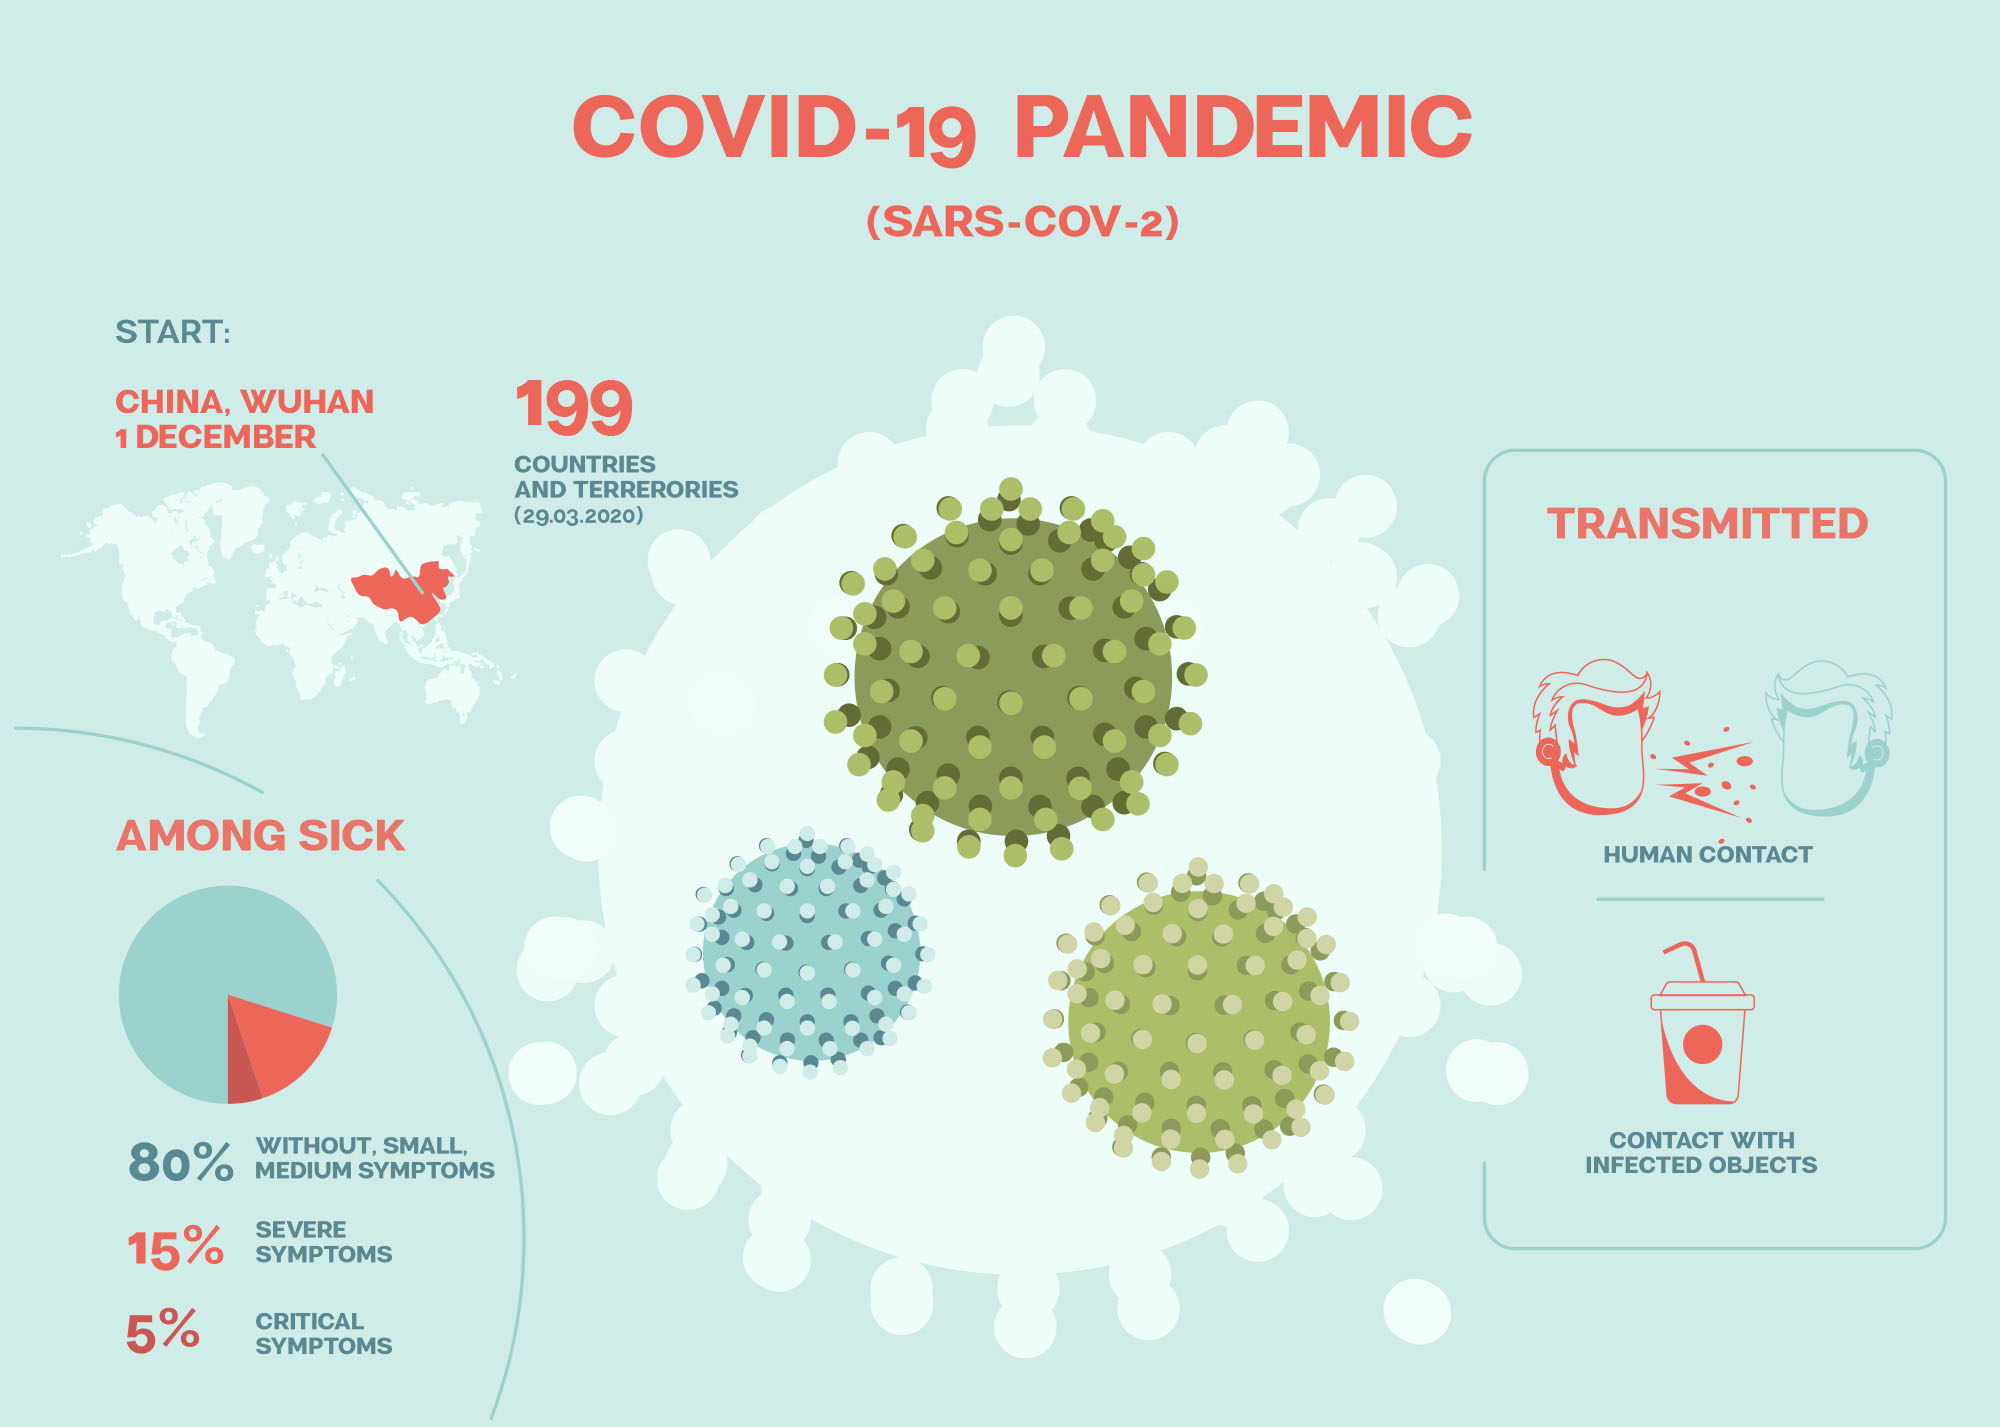 Covid-19 Pandemic Infographic